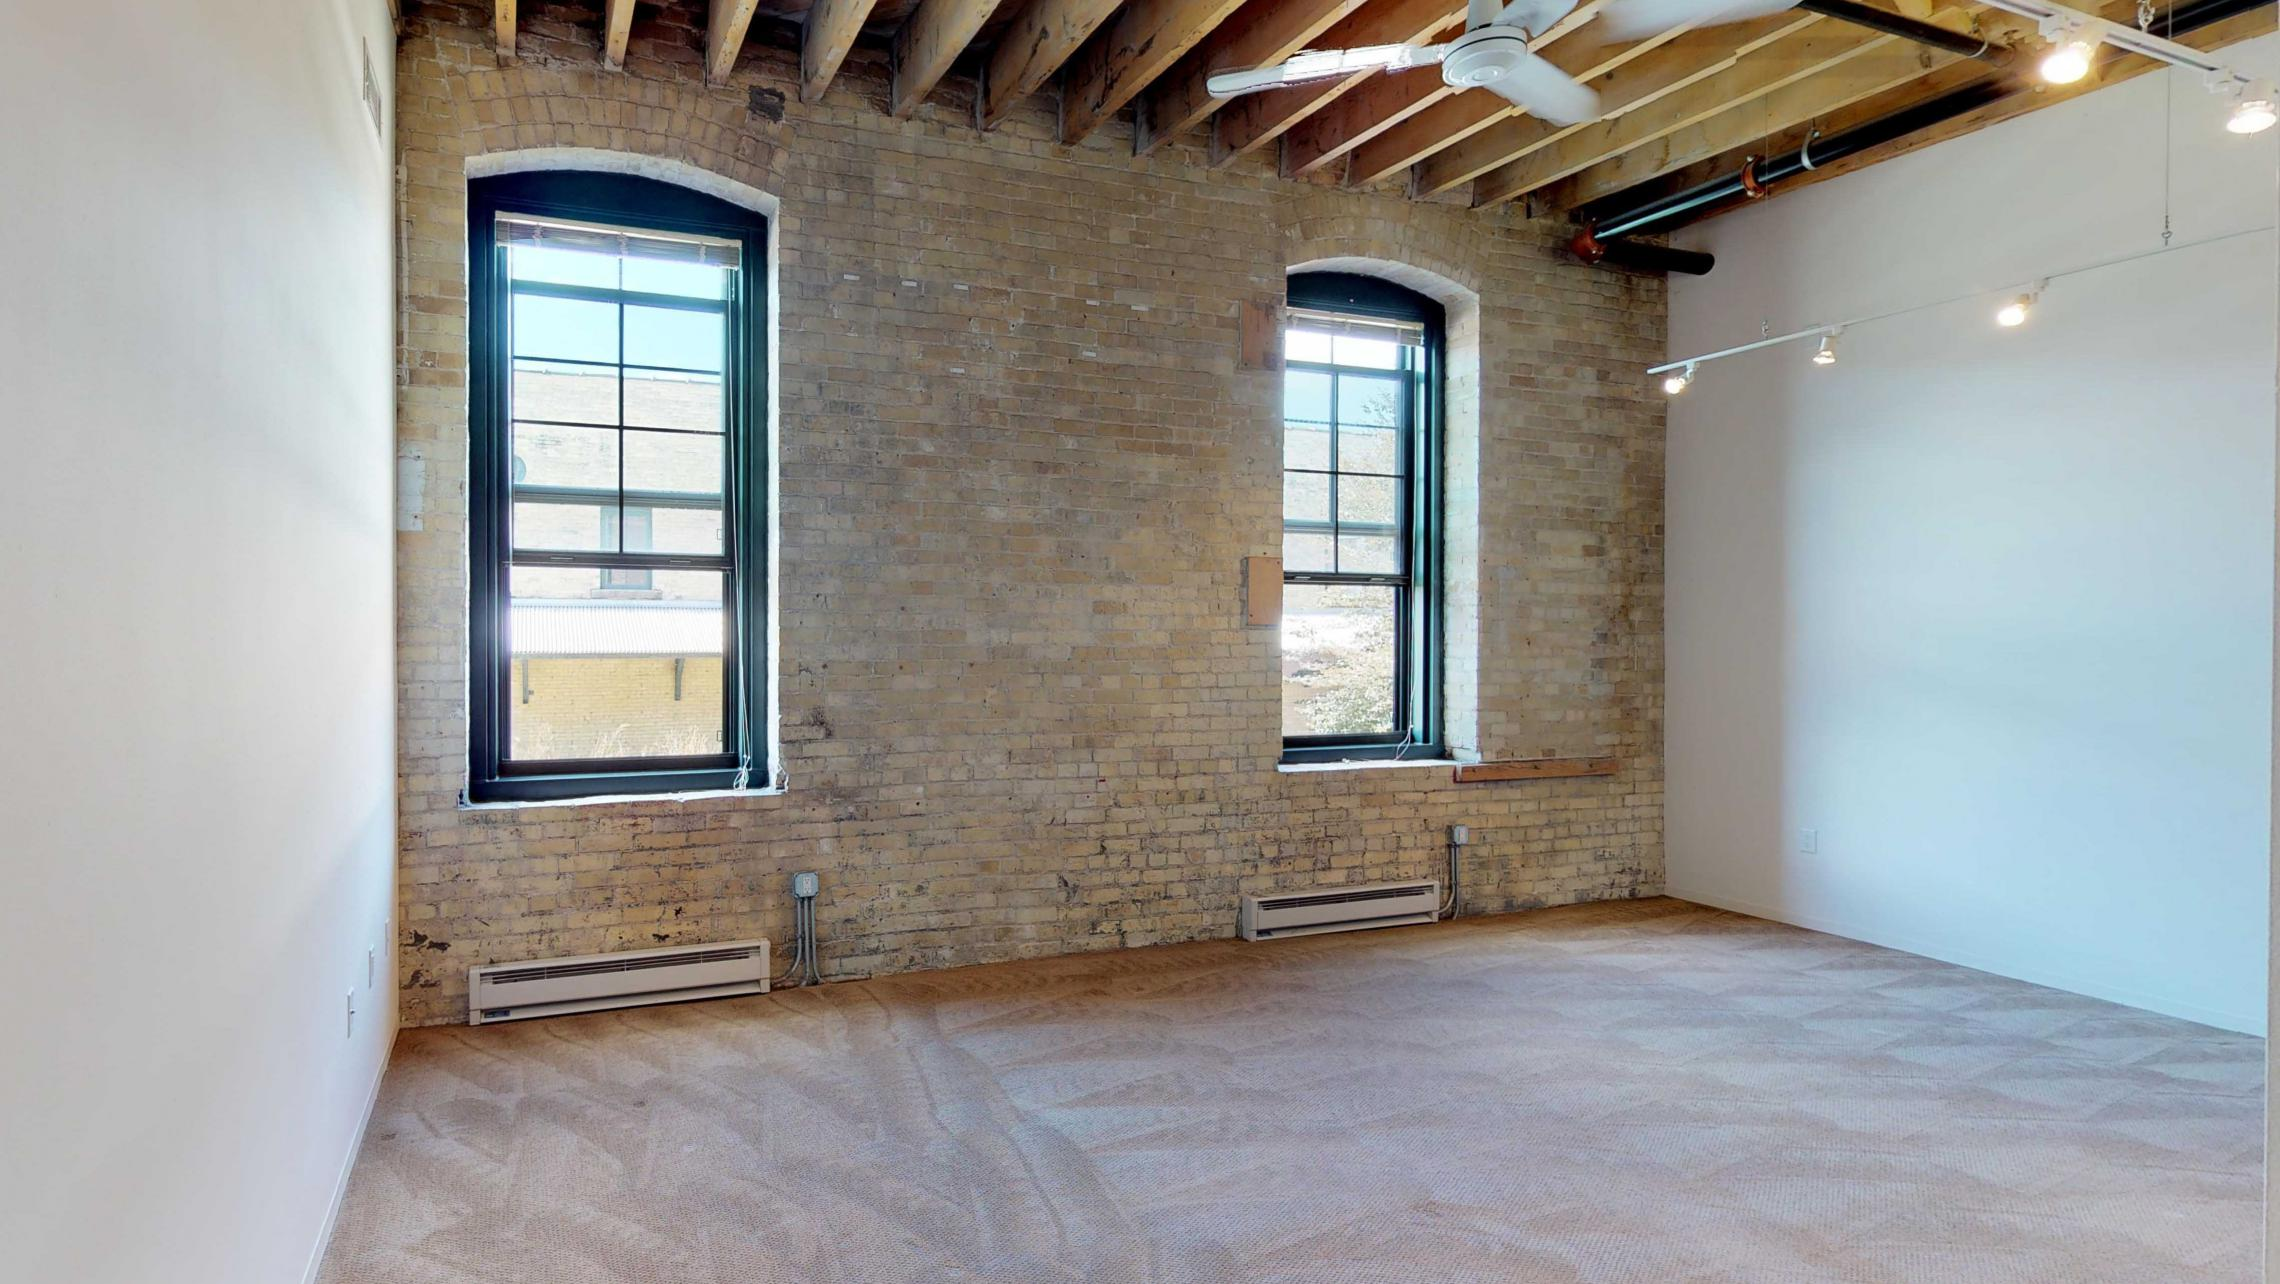 Tobacco-Lofts-Apartment-E210-one-bedroom-historic-exposed-brick-downtown-madison.jpg